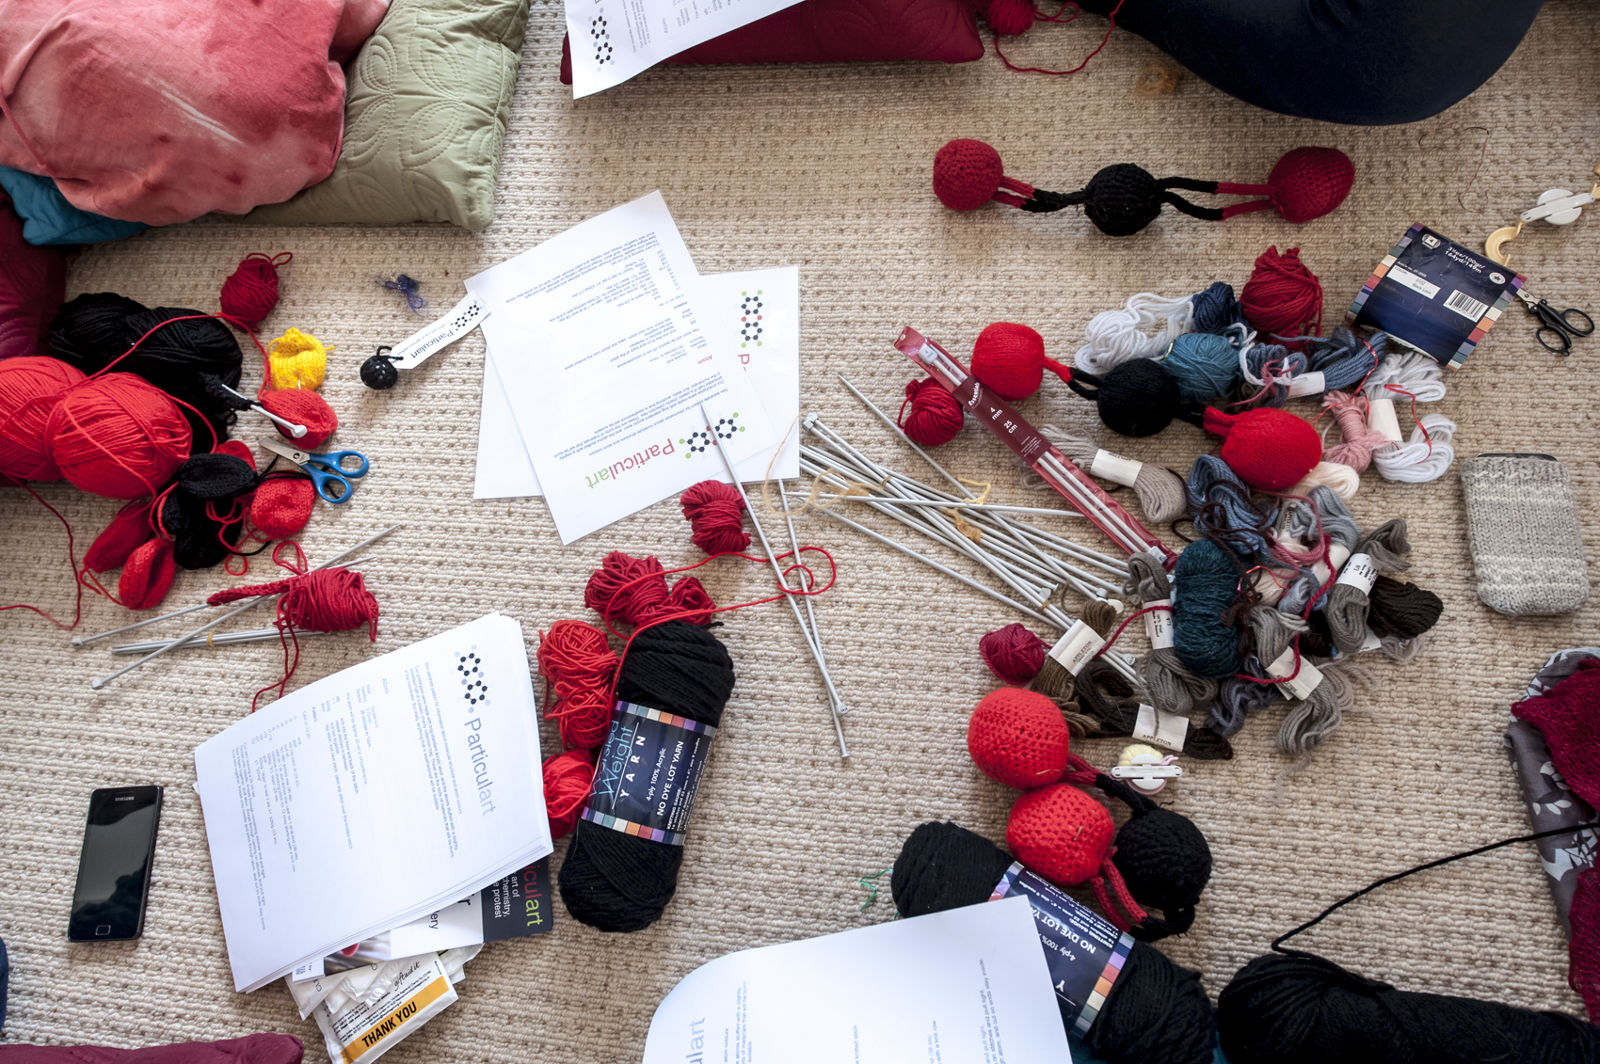 All the yarn and needles you need at the Particulart Knit-Your-Own Carbon Dioxide workshop